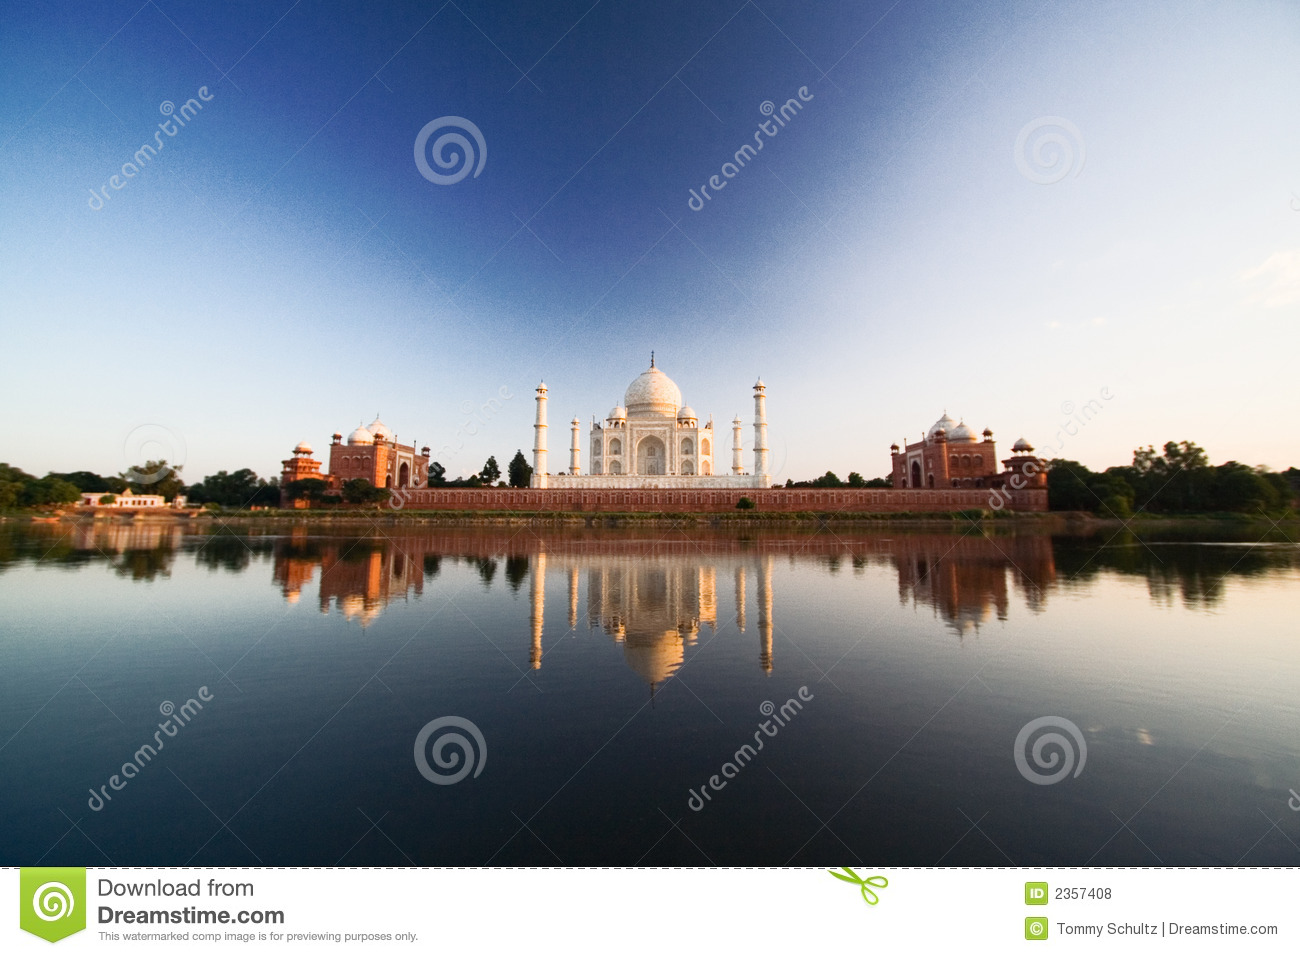 Taj Mahal reflected in river a